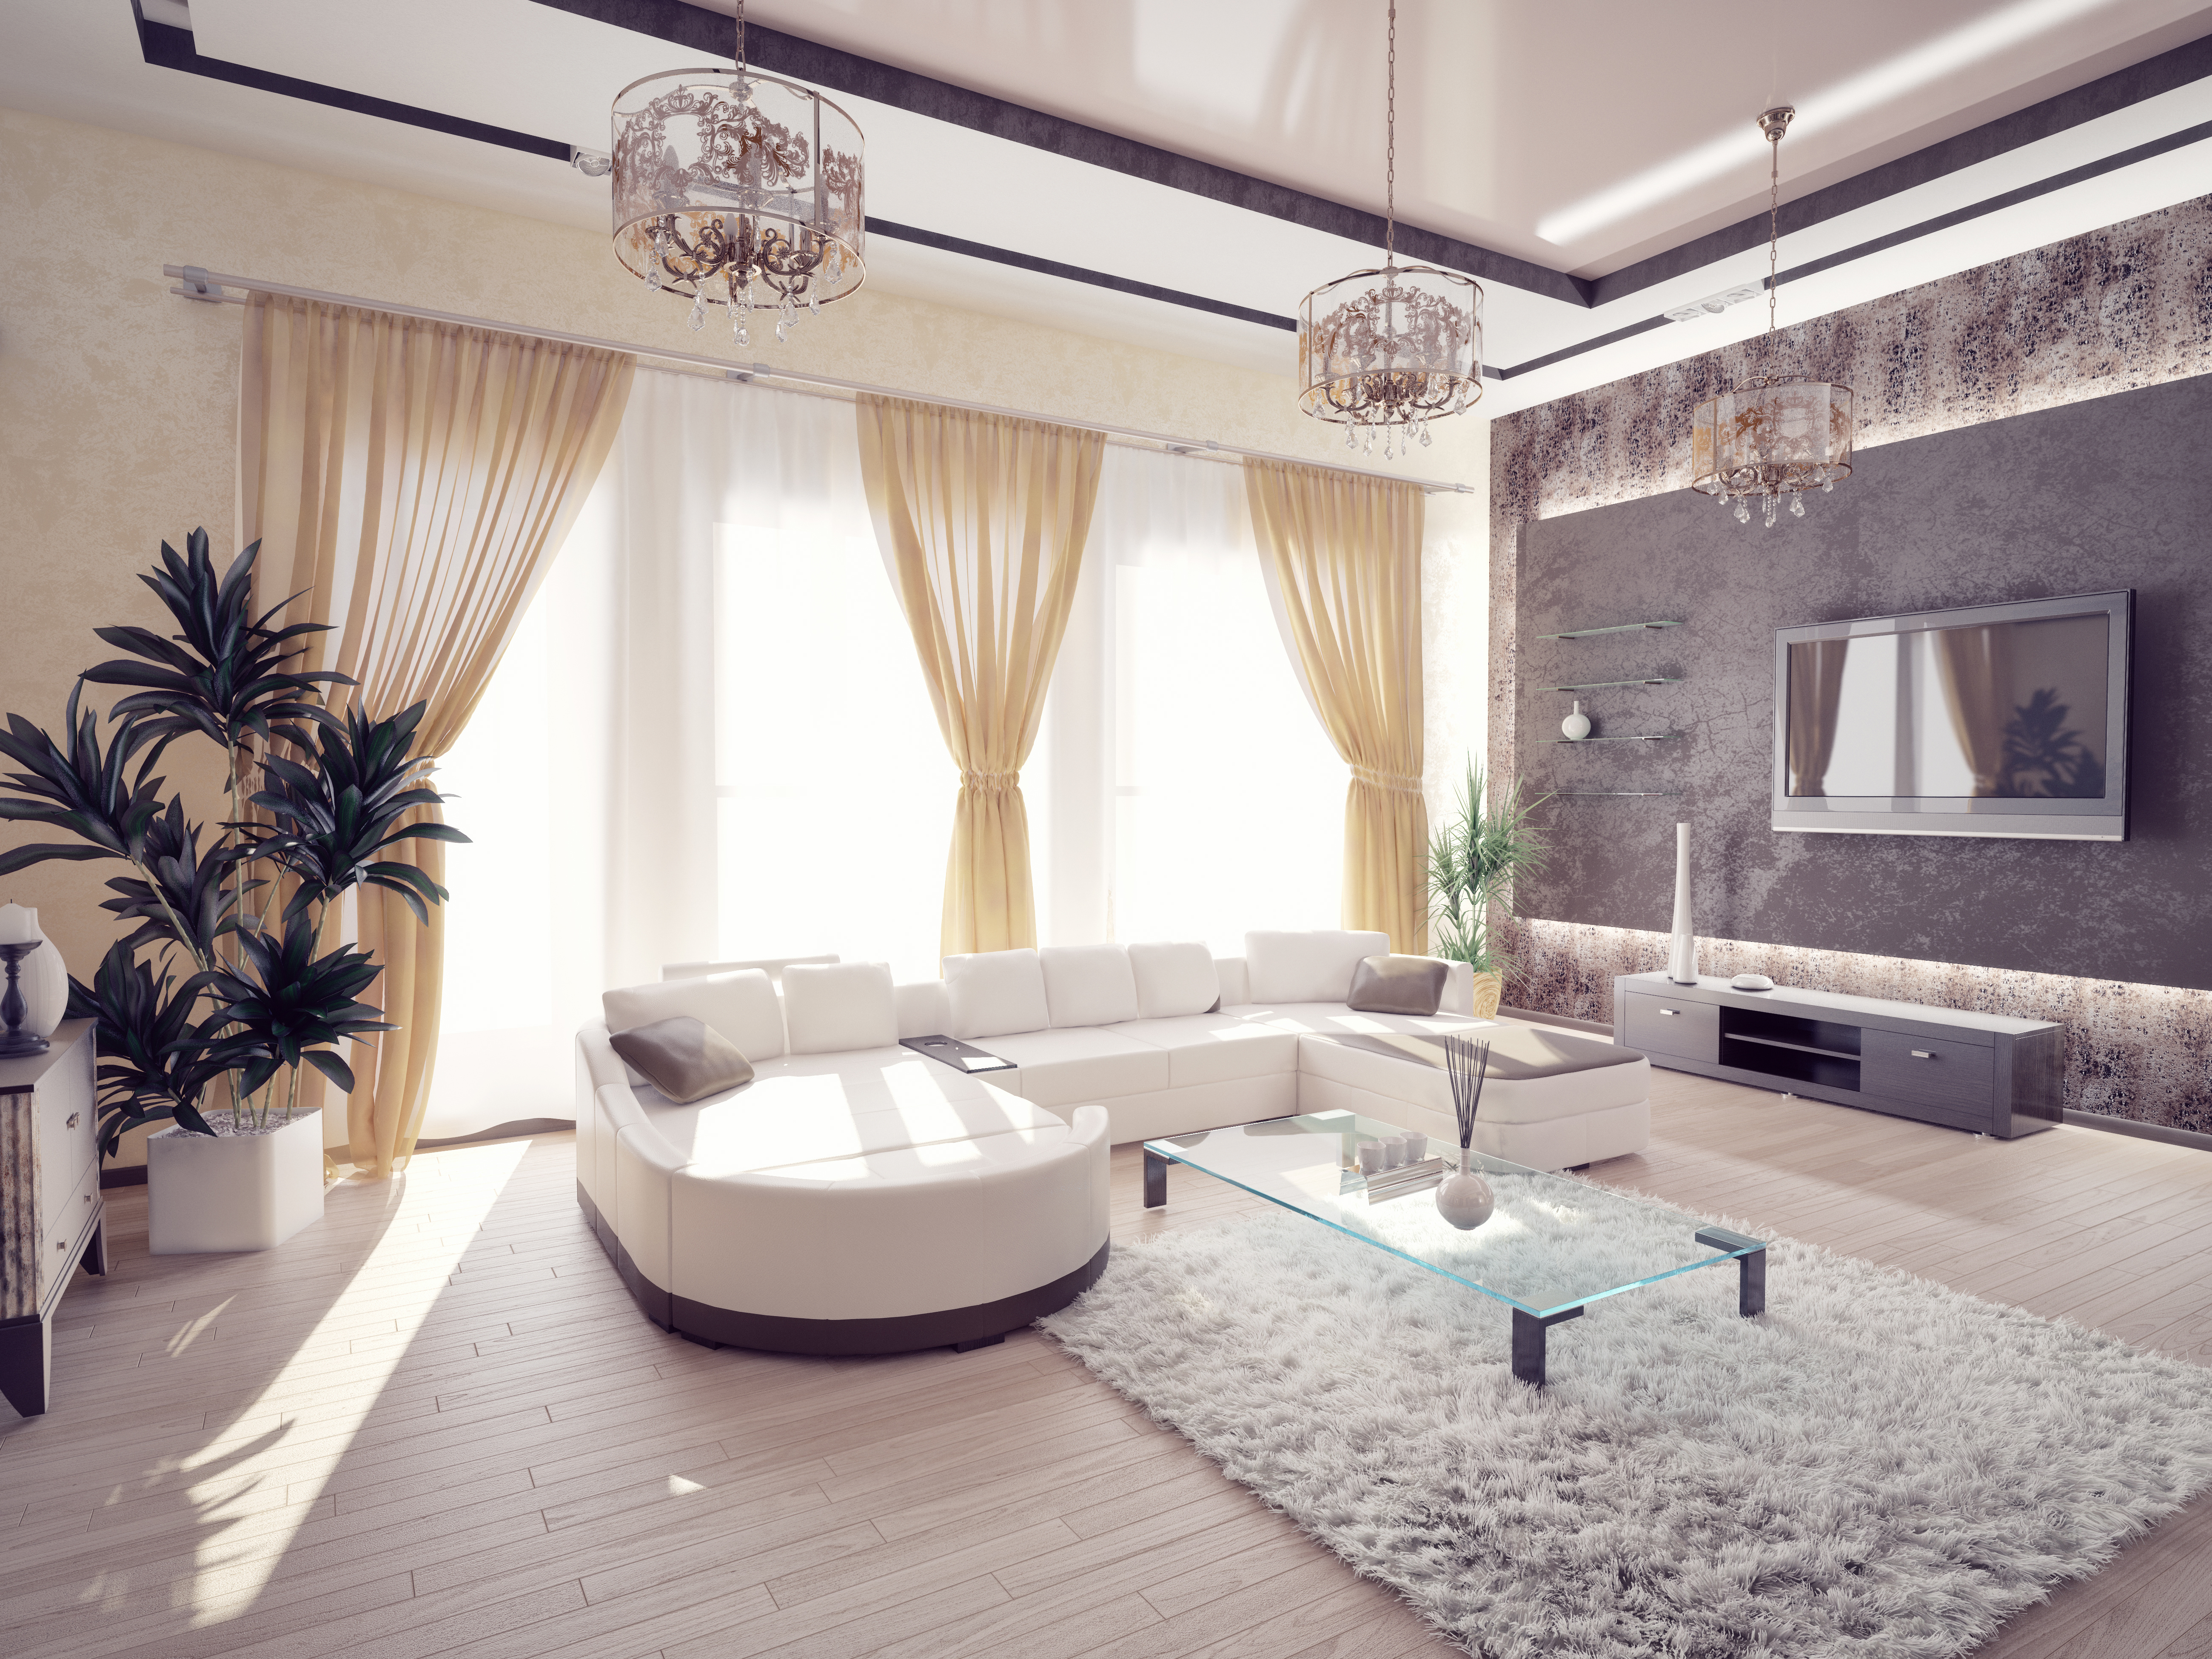 The Five Things You Need to Know When Looking for Living Room Curtains